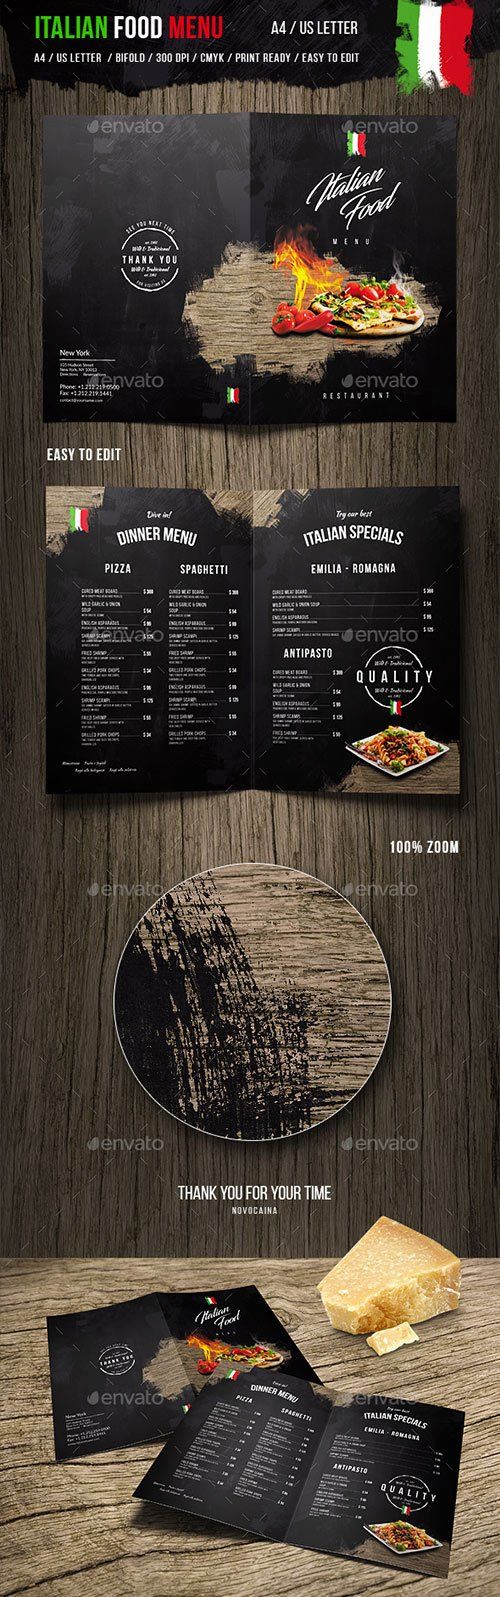 Graphicriver - Italian Food Menu - A4 and US Letter 19981197